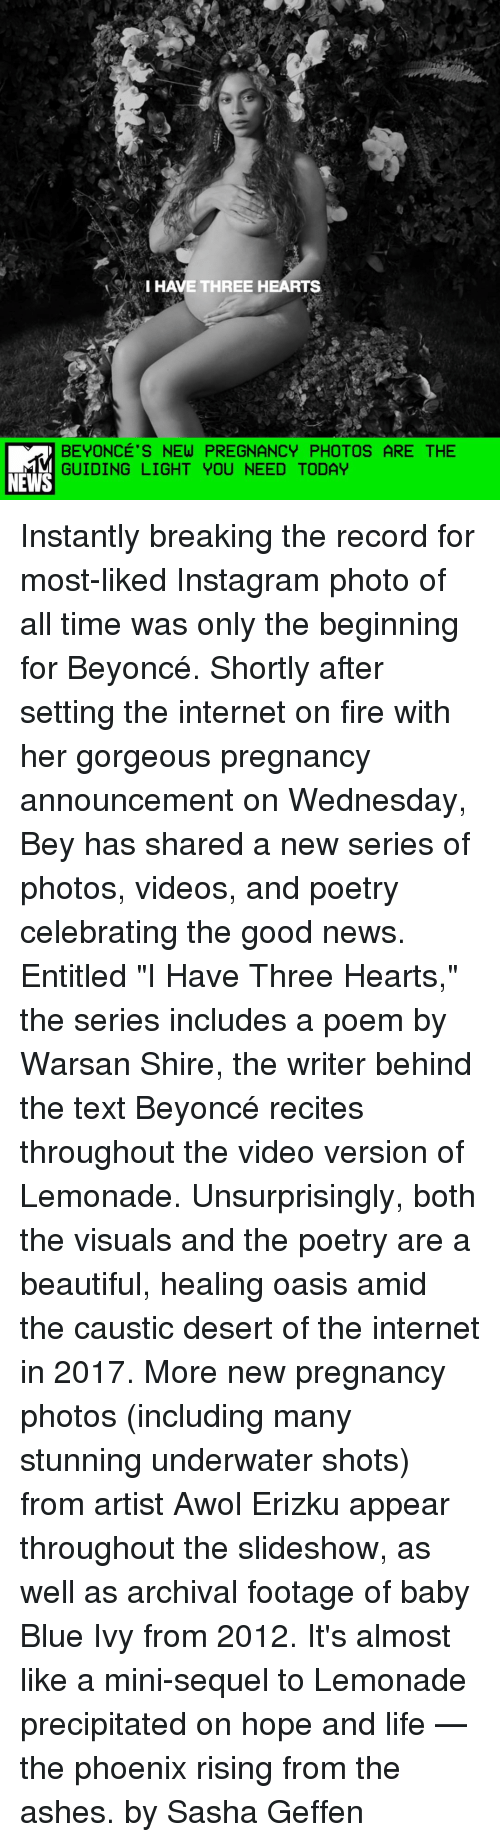 """Memes, Oasis, and Texting: VI HAVE THREE HEARTS  BEYONCE'S NEW PREGNANCY PHOTOS ARE THE  GUIDING LIGHT YOU NEED TODAY  NEWS Instantly breaking the record for most-liked Instagram photo of all time was only the beginning for Beyoncé. Shortly after setting the internet on fire with her gorgeous pregnancy announcement on Wednesday, Bey has shared a new series of photos, videos, and poetry celebrating the good news. Entitled """"I Have Three Hearts,"""" the series includes a poem by Warsan Shire, the writer behind the text Beyoncé recites throughout the video version of Lemonade. Unsurprisingly, both the visuals and the poetry are a beautiful, healing oasis amid the caustic desert of the internet in 2017. More new pregnancy photos (including many stunning underwater shots) from artist Awol Erizku appear throughout the slideshow, as well as archival footage of baby Blue Ivy from 2012. It's almost like a mini-sequel to Lemonade precipitated on hope and life — the phoenix rising from the ashes. by Sasha Geffen"""